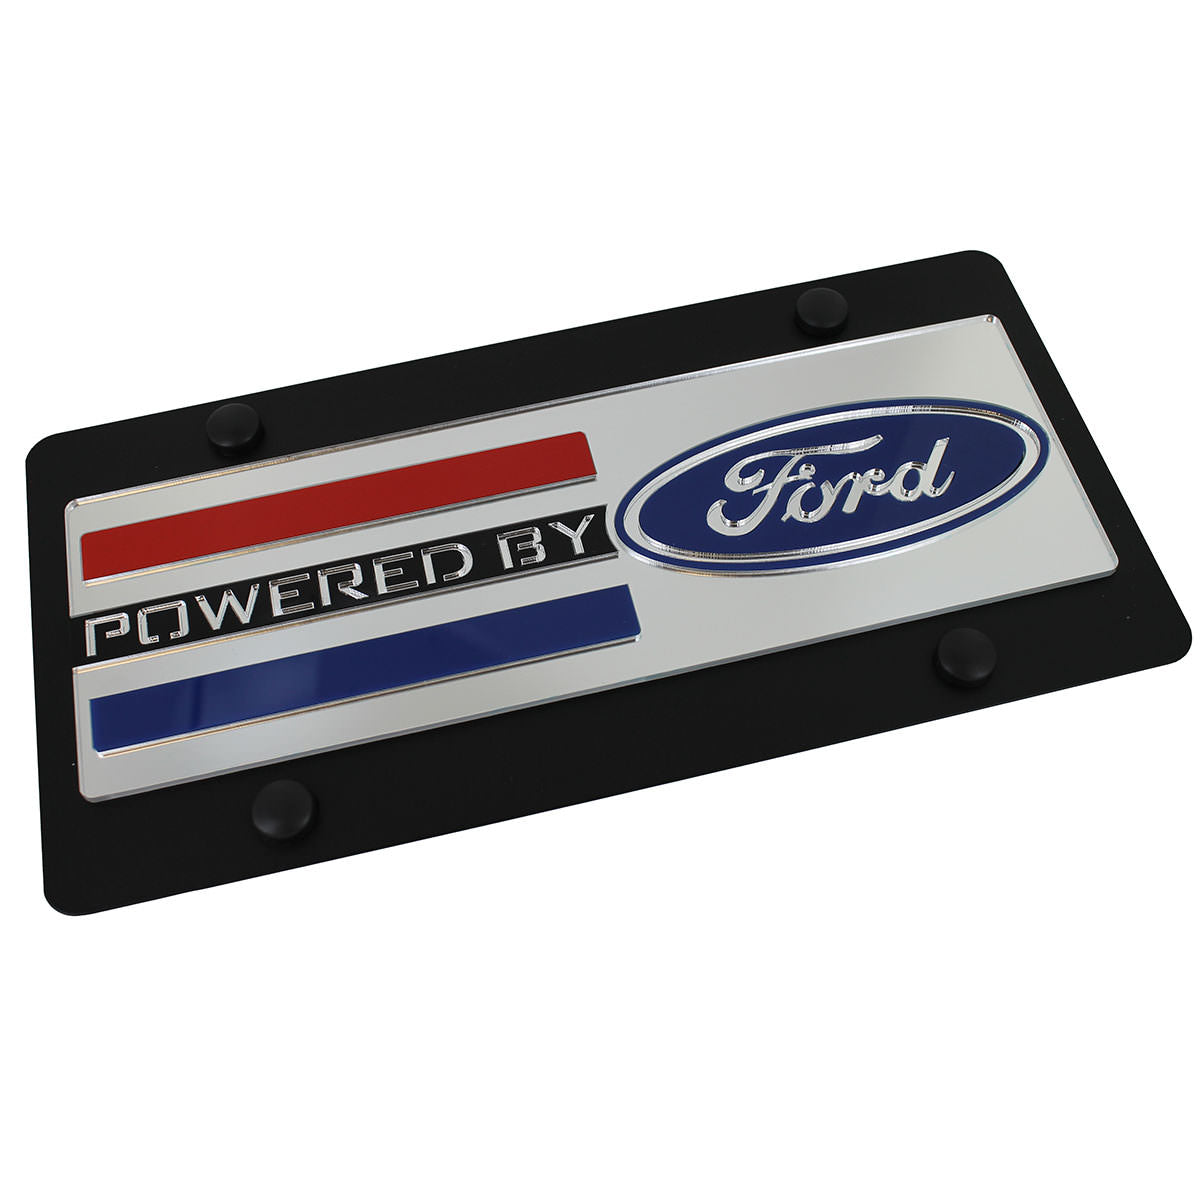 Ford Powered By Ford Logo Plate